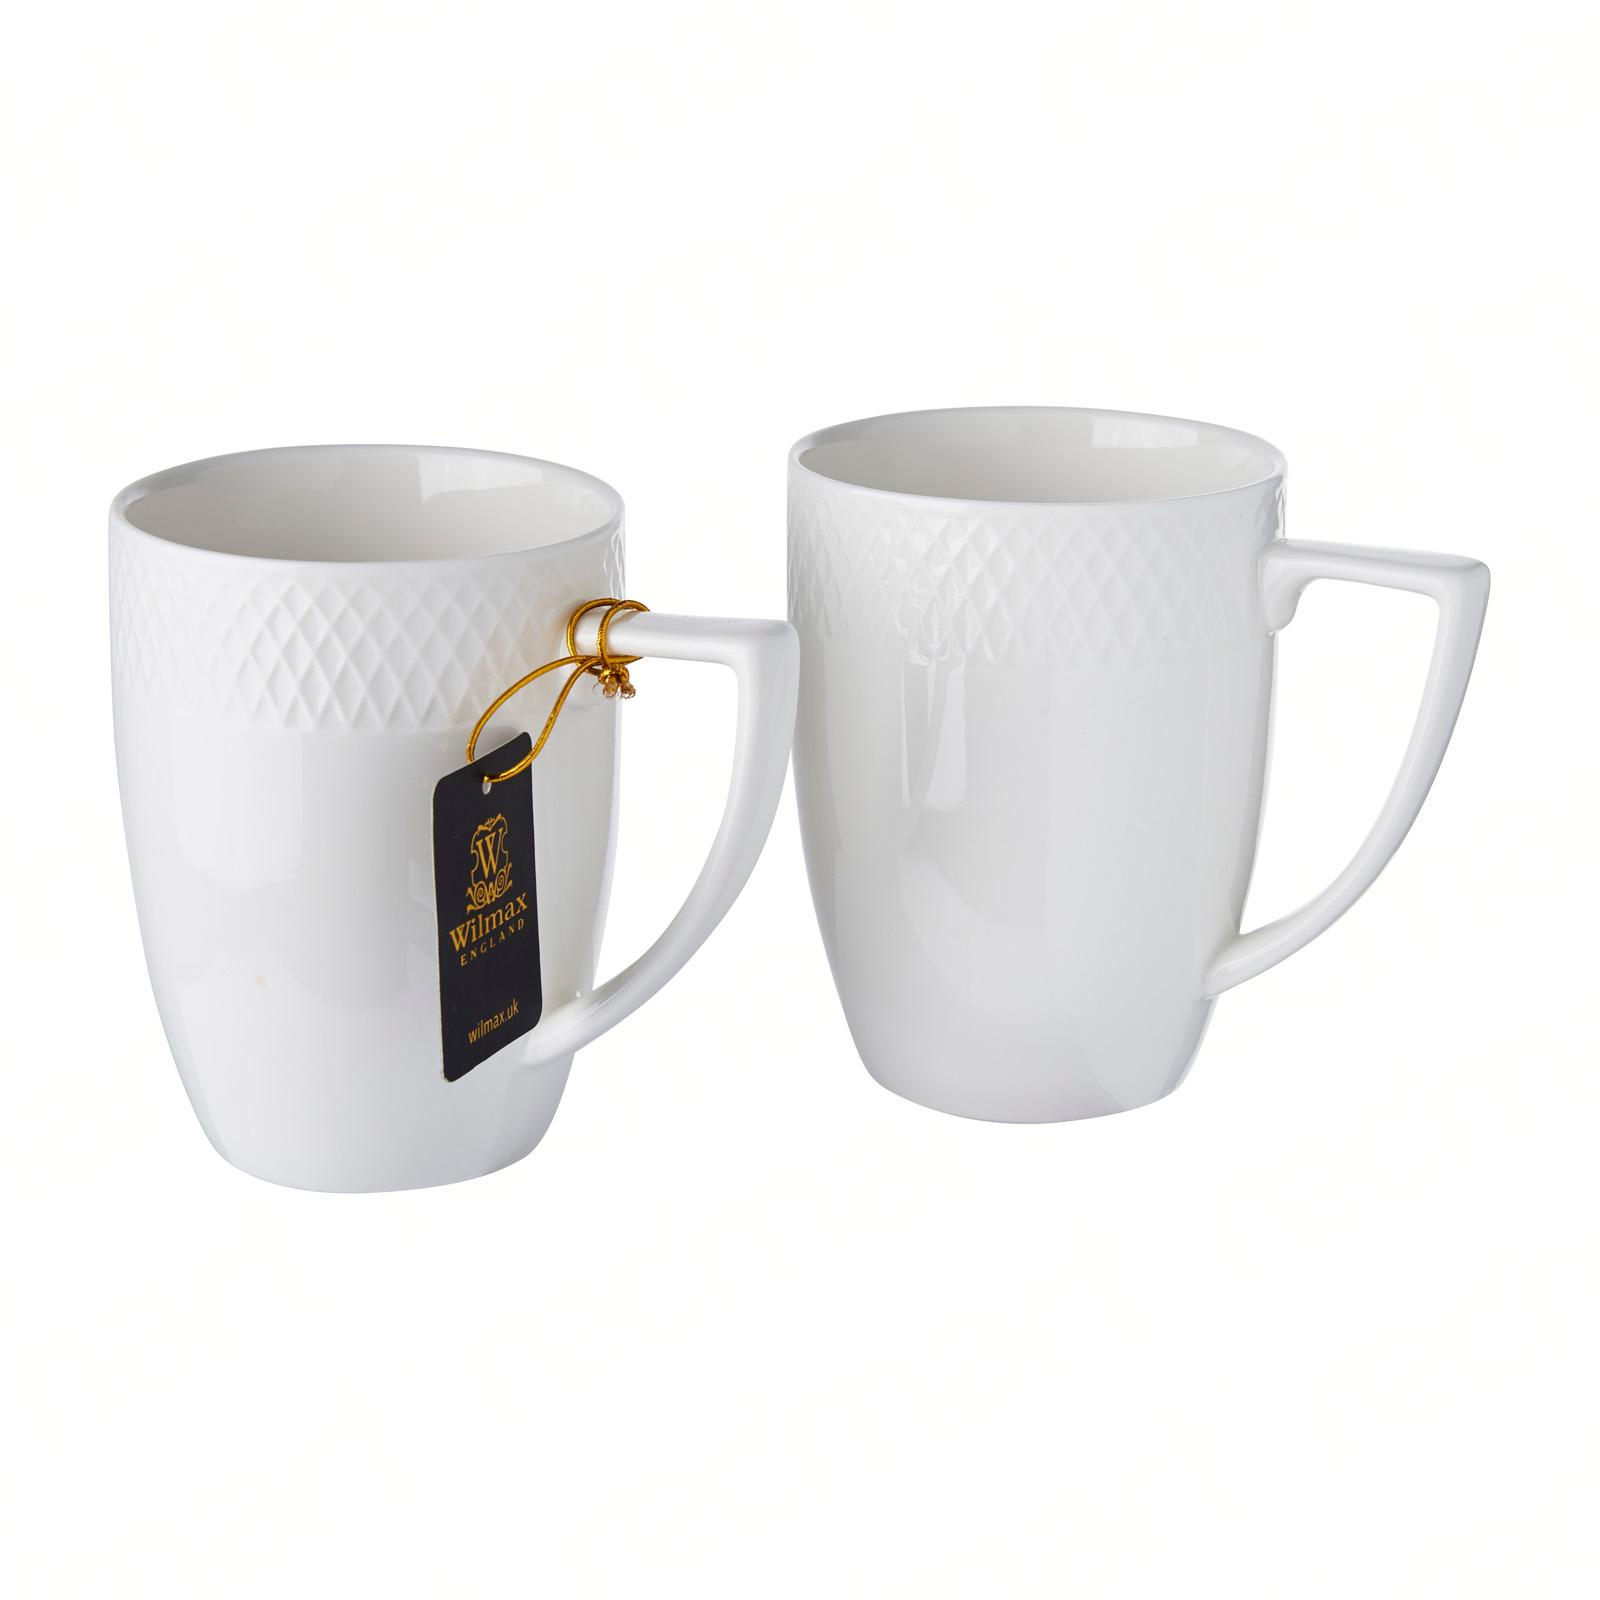 Wilmax England Porcelain Mug 2Pcs Set 450ml